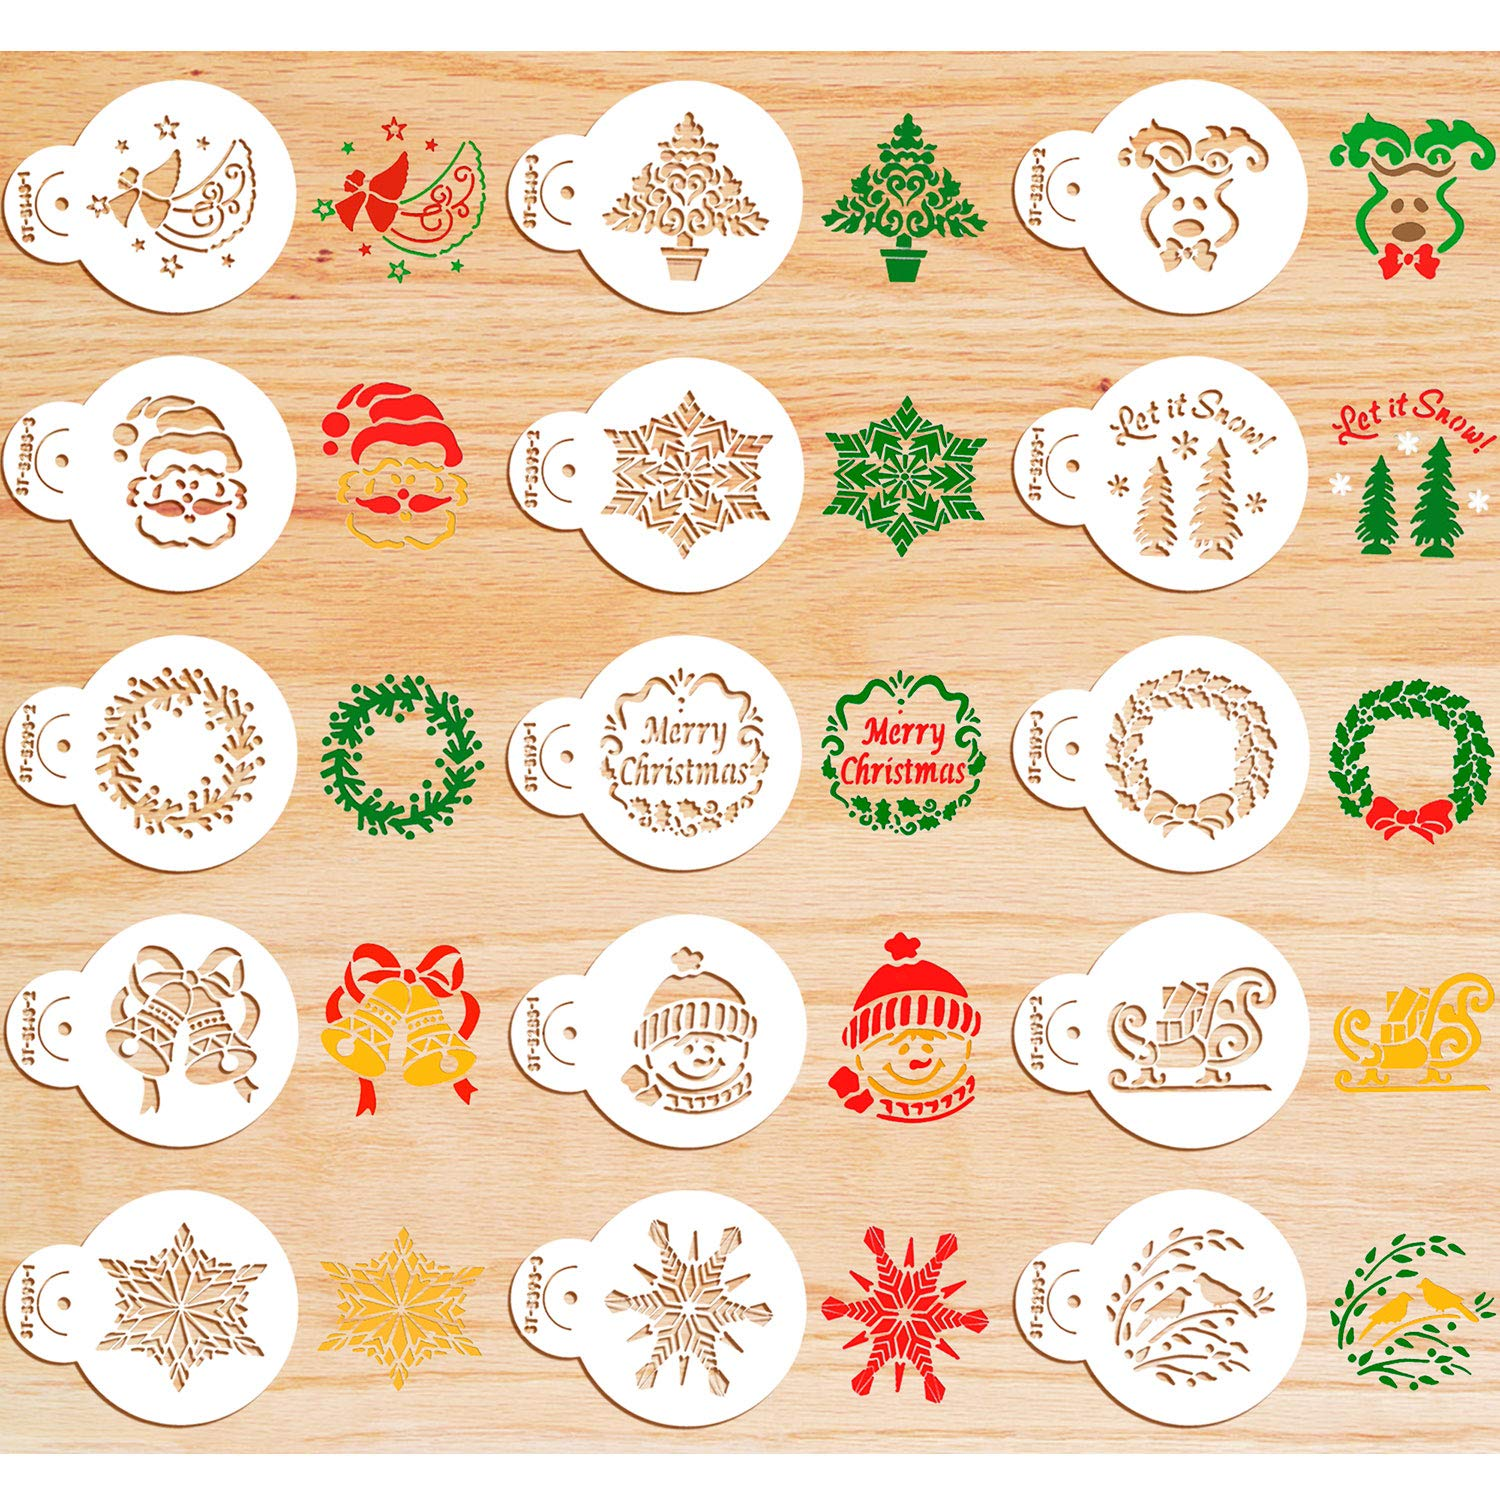 30 Pieces Christmas Cookie Stencils Fondant Cupcake Stencil Set Decorative Stencils Cake Tool by Boao